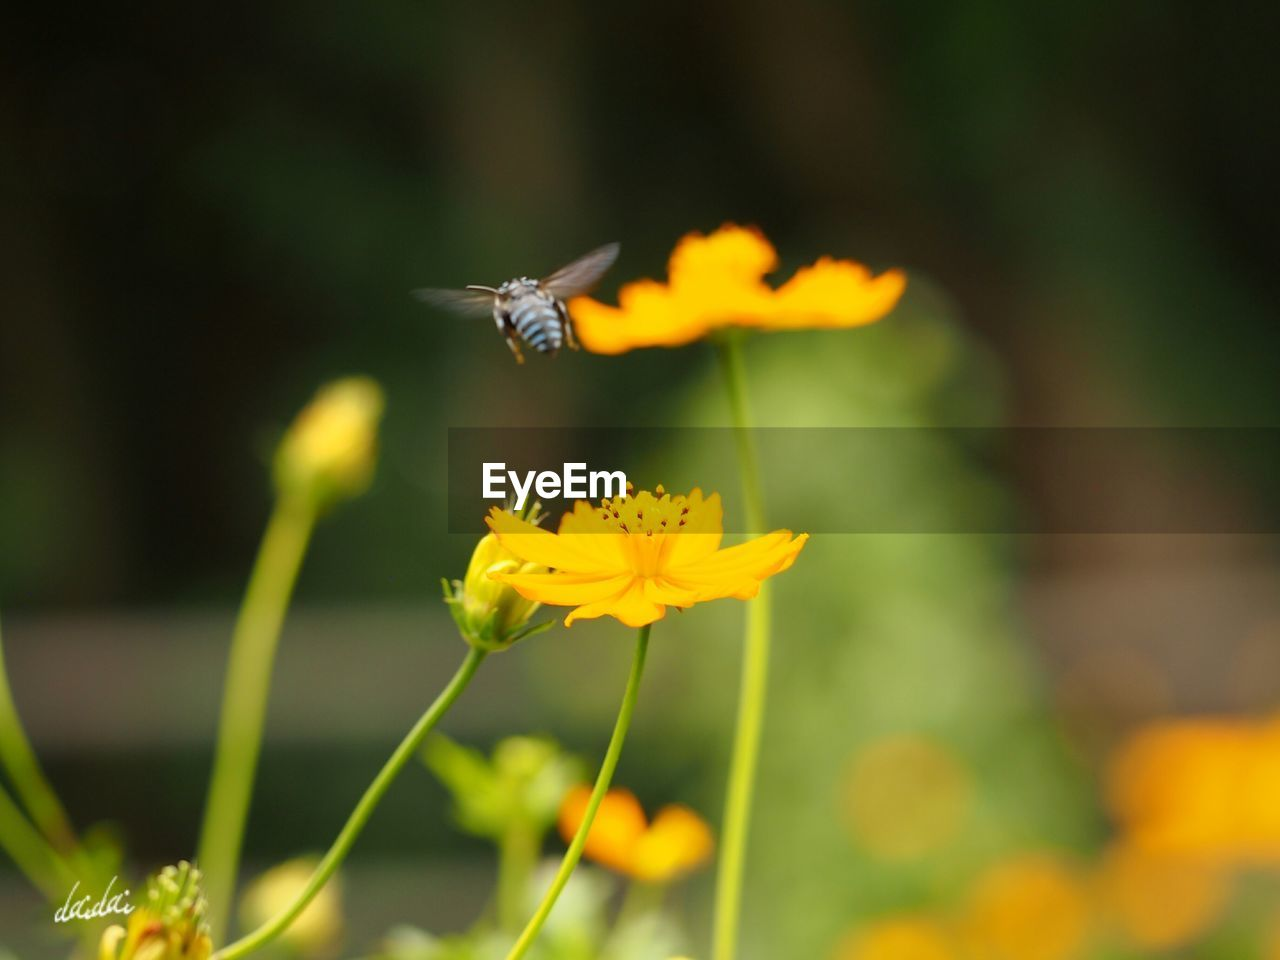 flower, animal themes, one animal, animals in the wild, insect, nature, fragility, petal, yellow, beauty in nature, plant, growth, no people, outdoors, freshness, focus on foreground, animal wildlife, day, flower head, blooming, close-up, pollination, flying, bee, buzzing